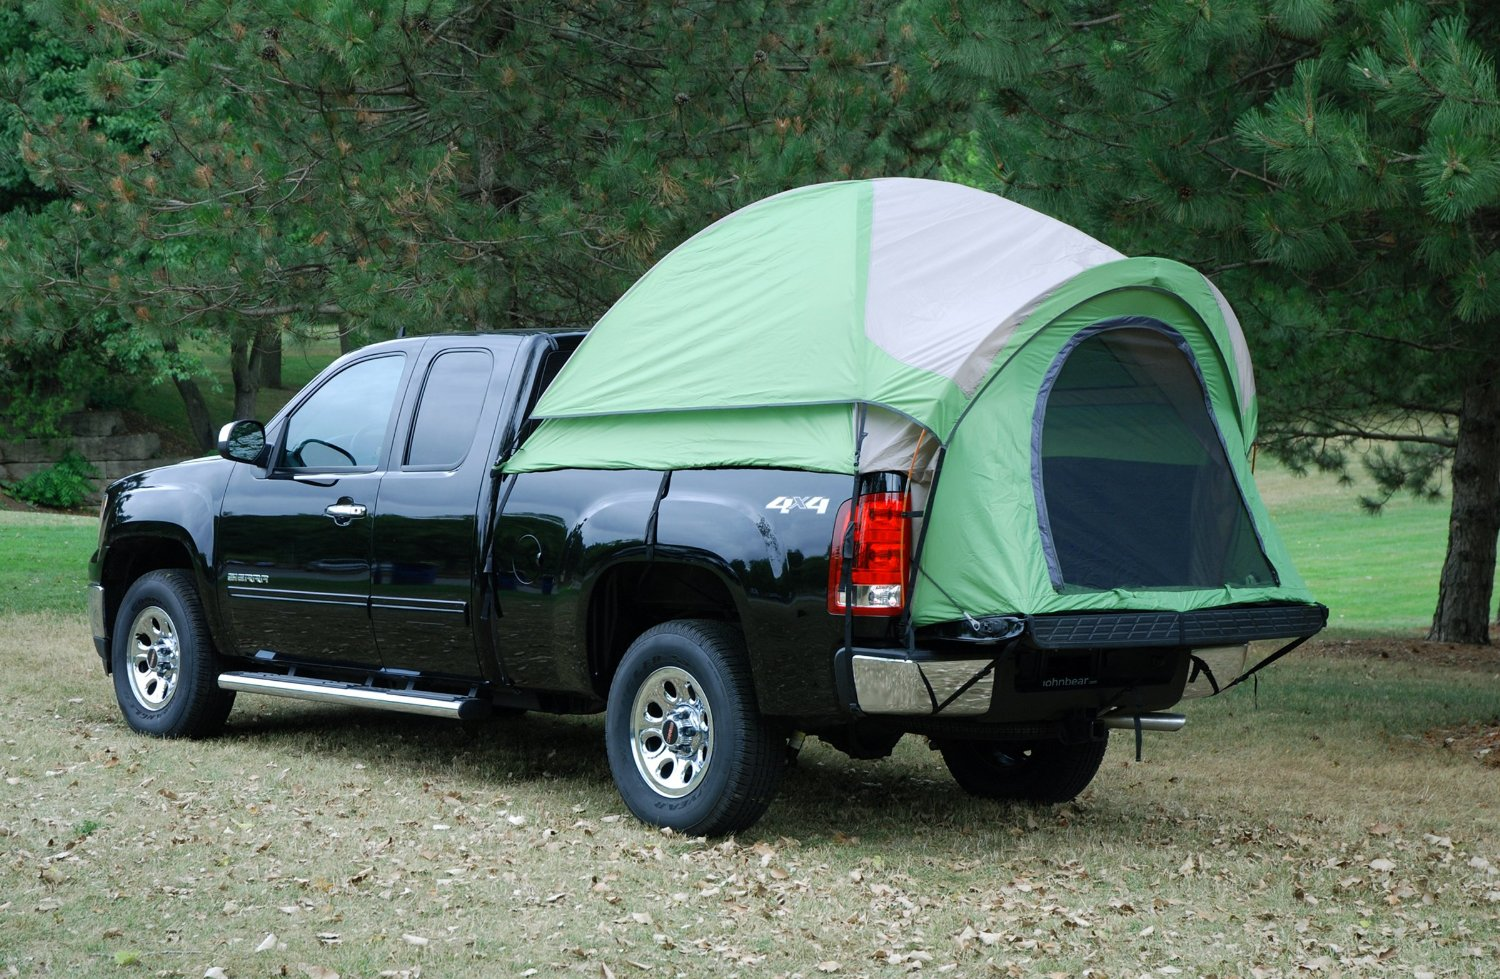 & 3 Of The Best Truck Bed Tents Reviewed For 2018